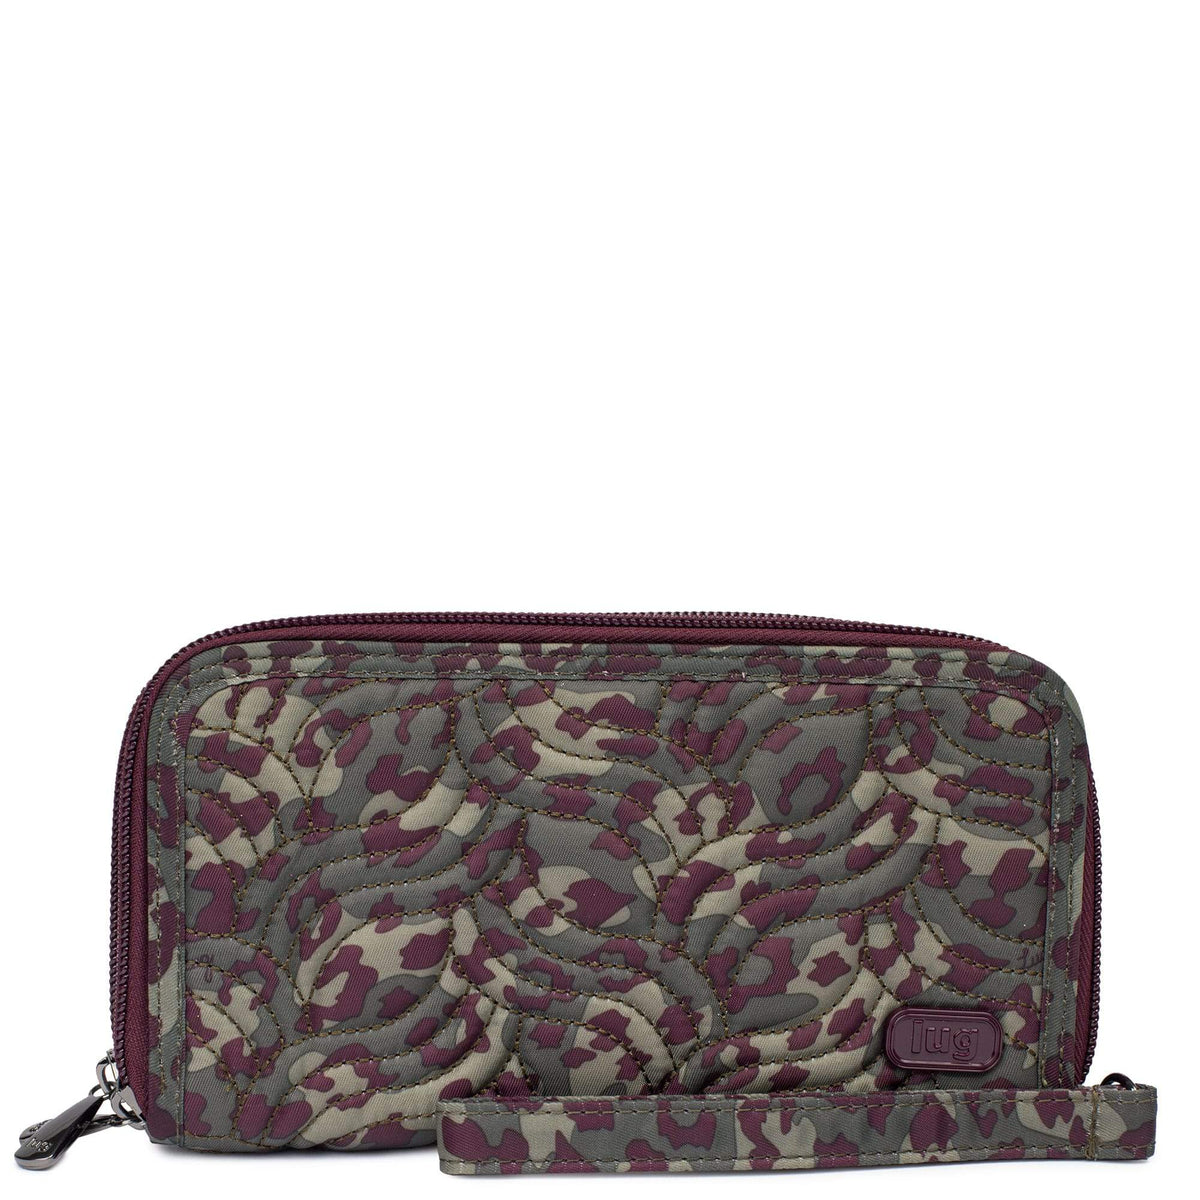 Splits XL Wristlet RFID Wallet